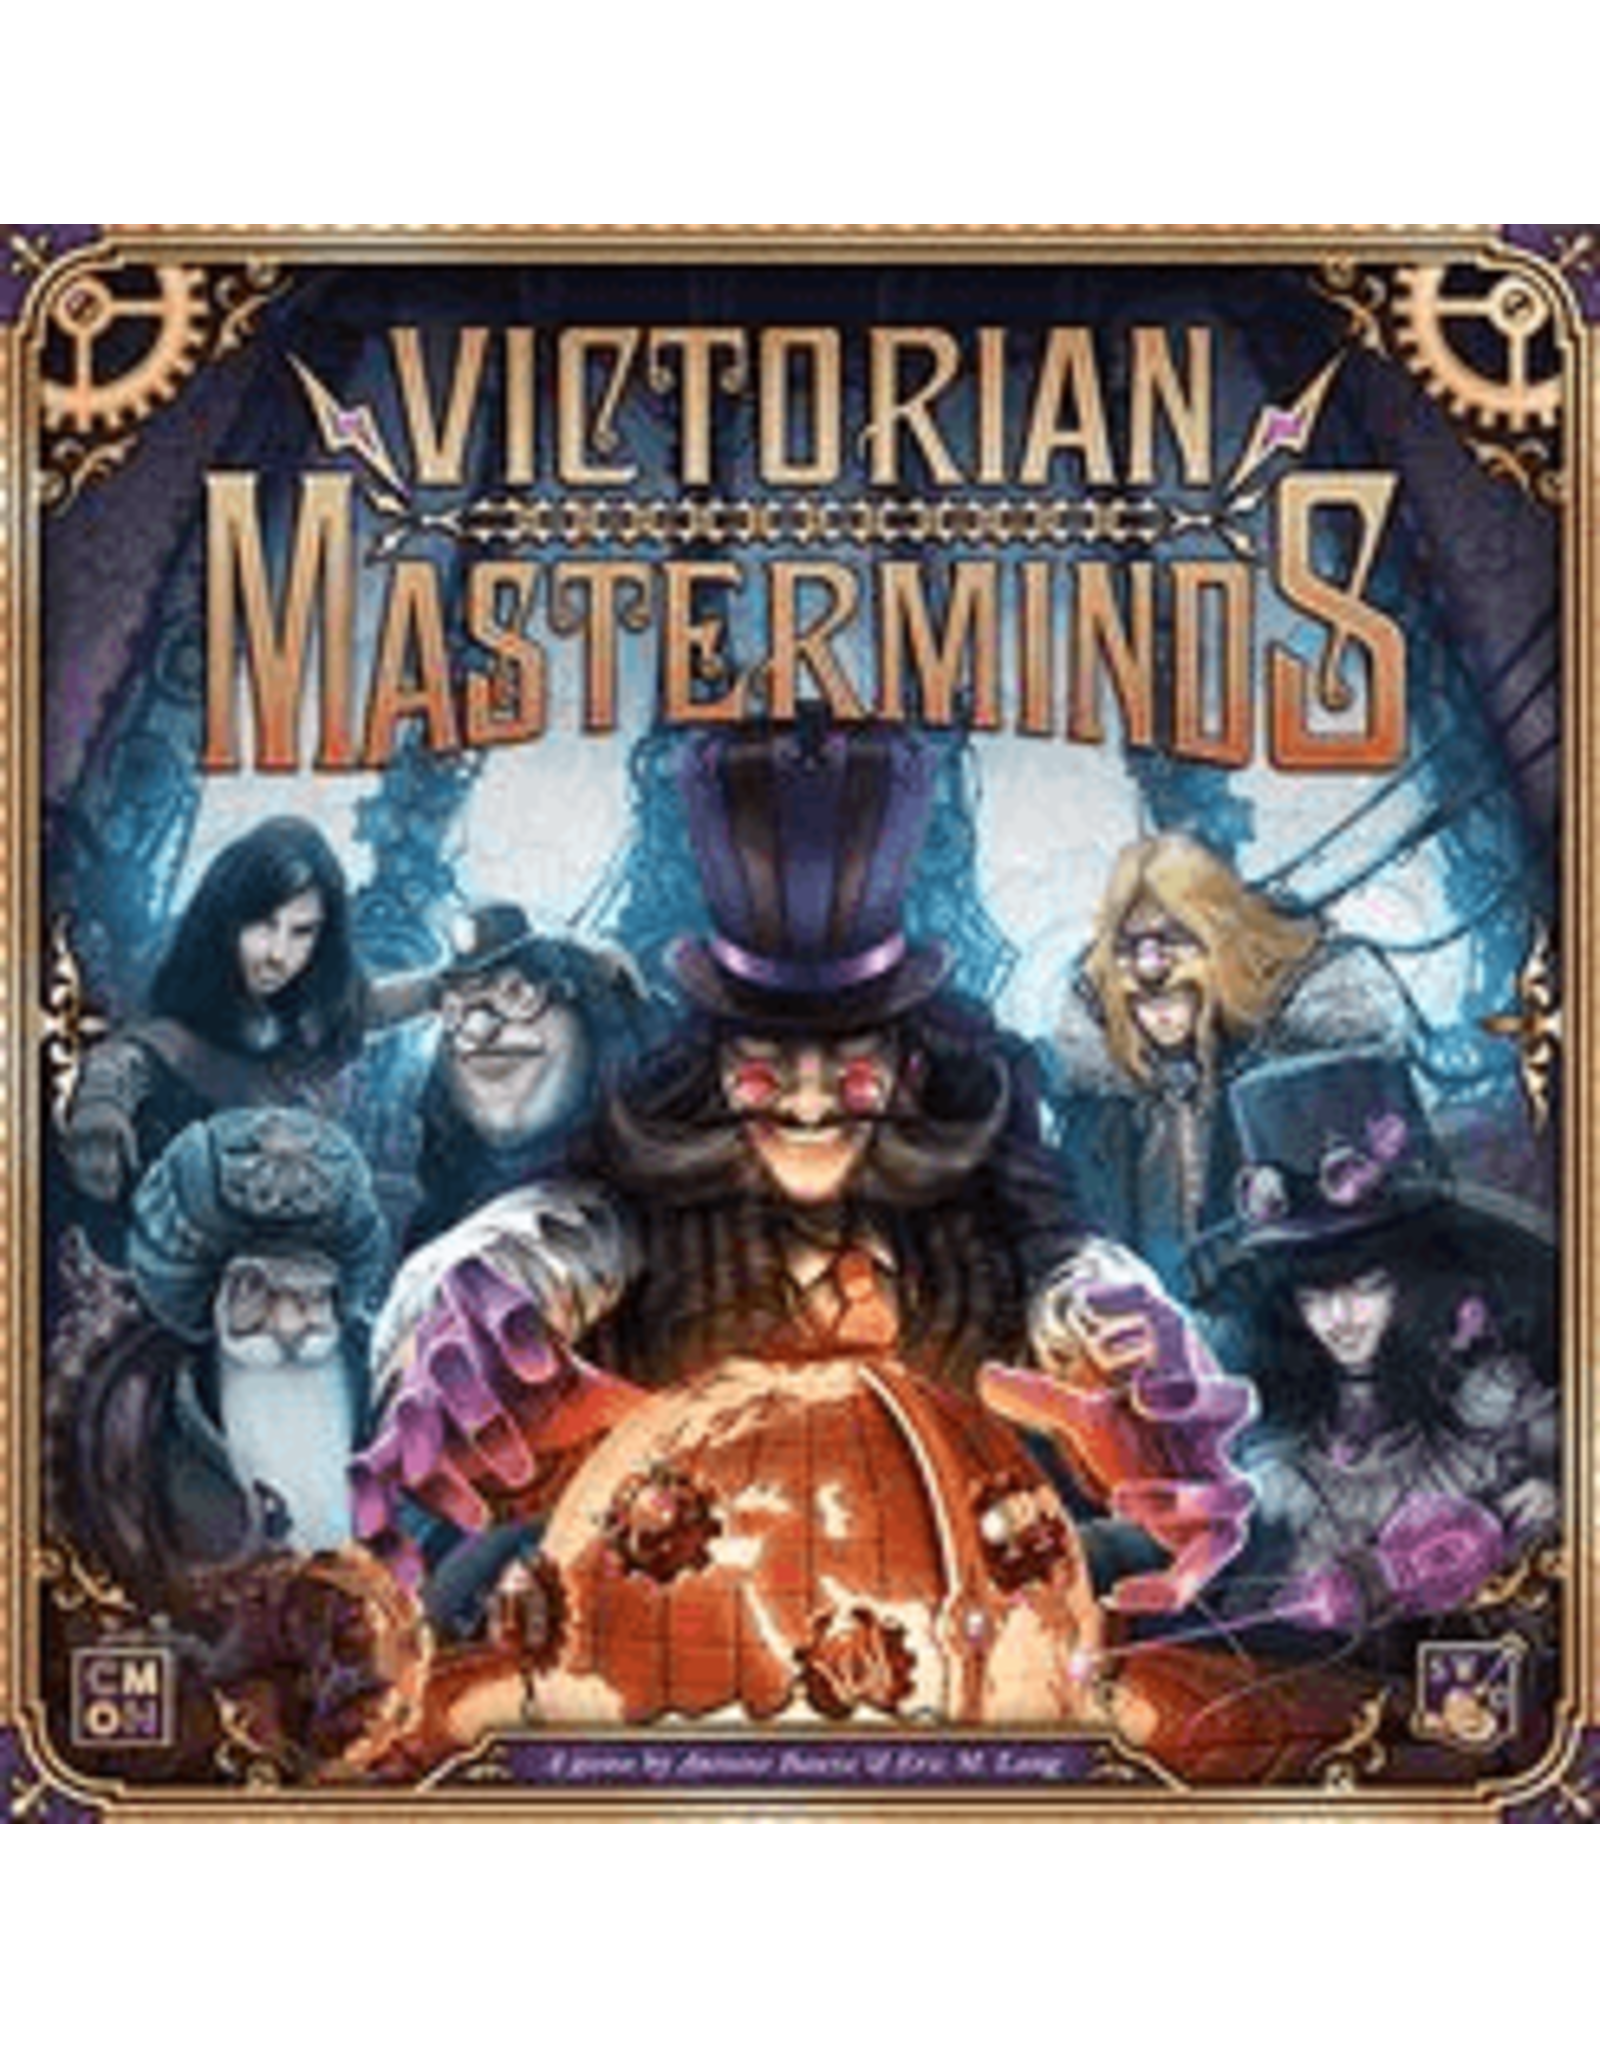 CMON Victorian Materminds